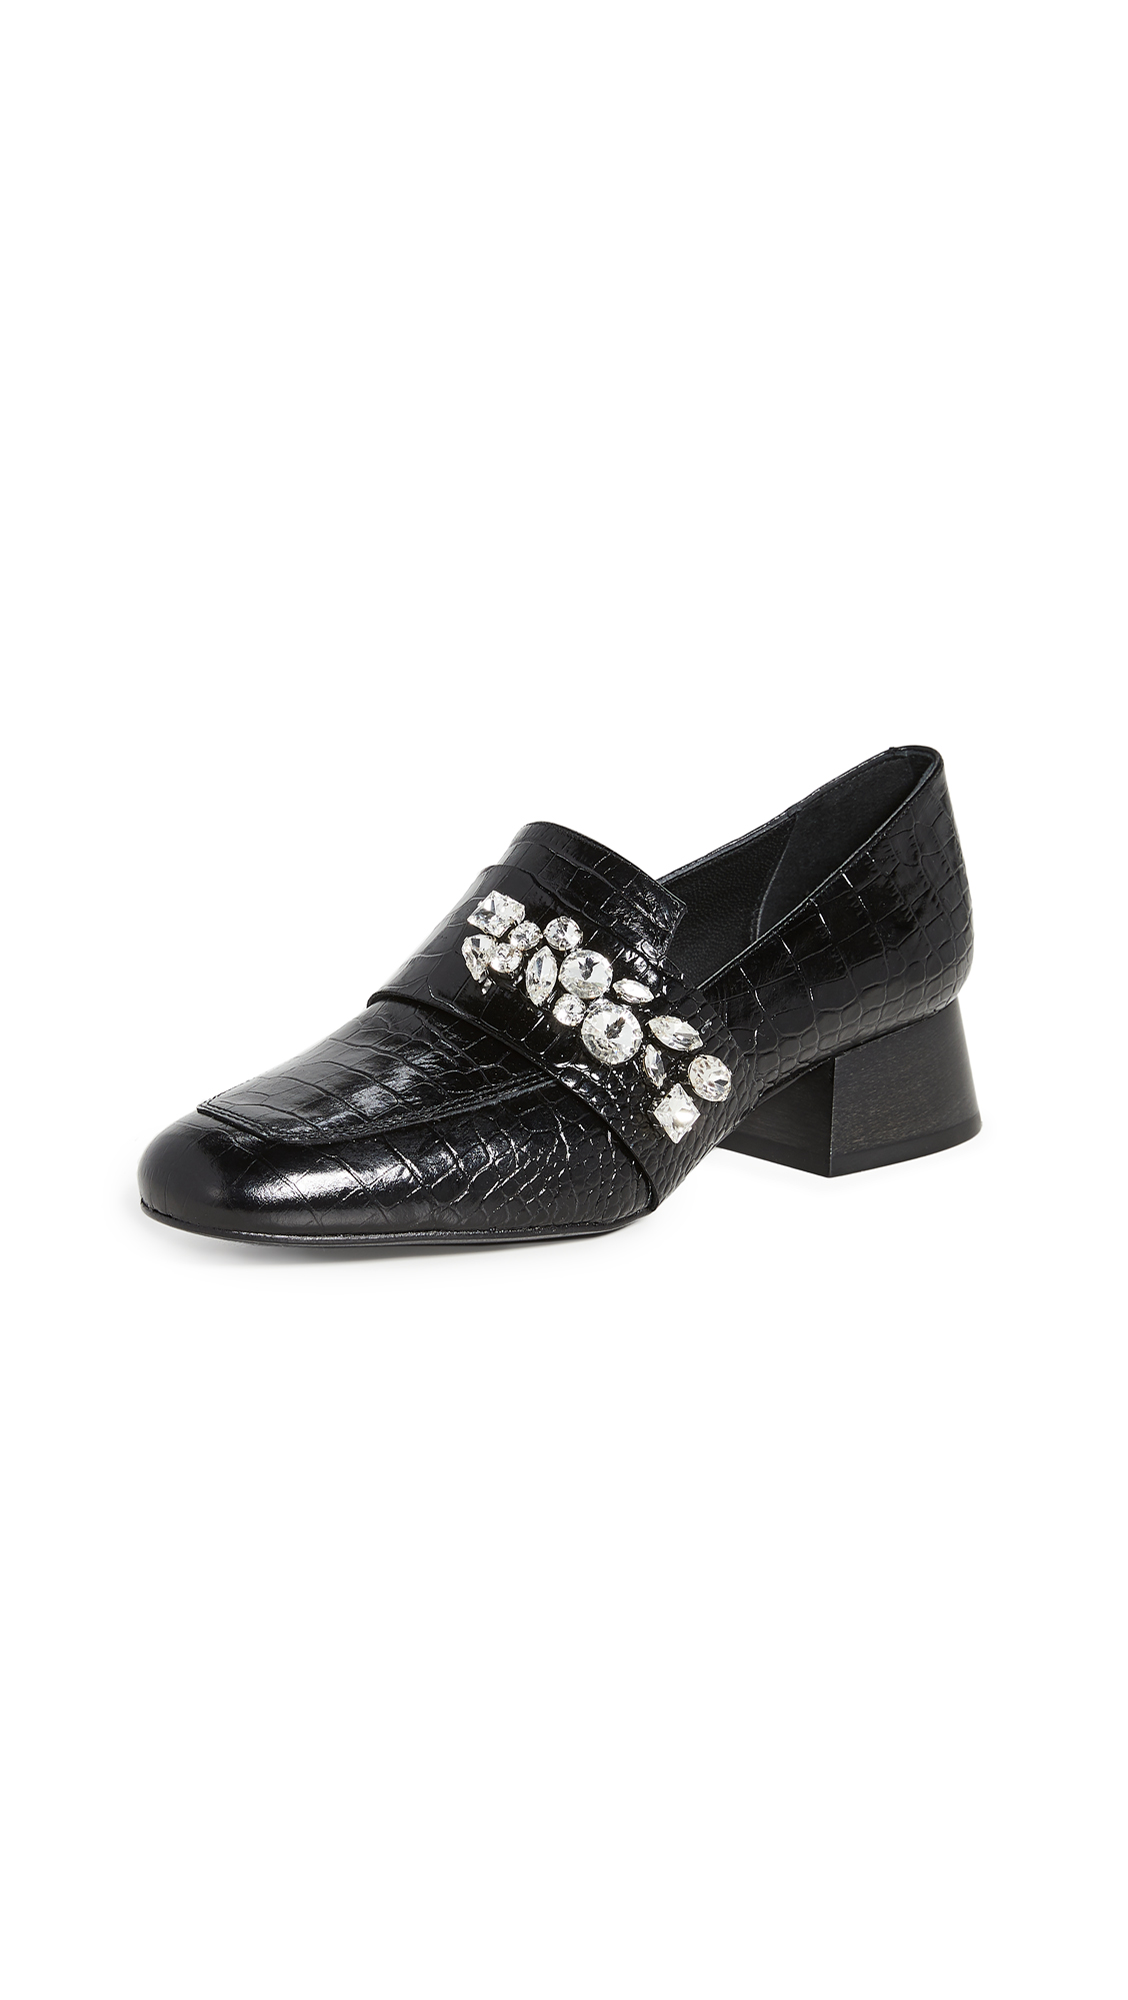 Buy Freda Salvador Blossom Jewels Heeled Loafers online, shop Freda Salvador